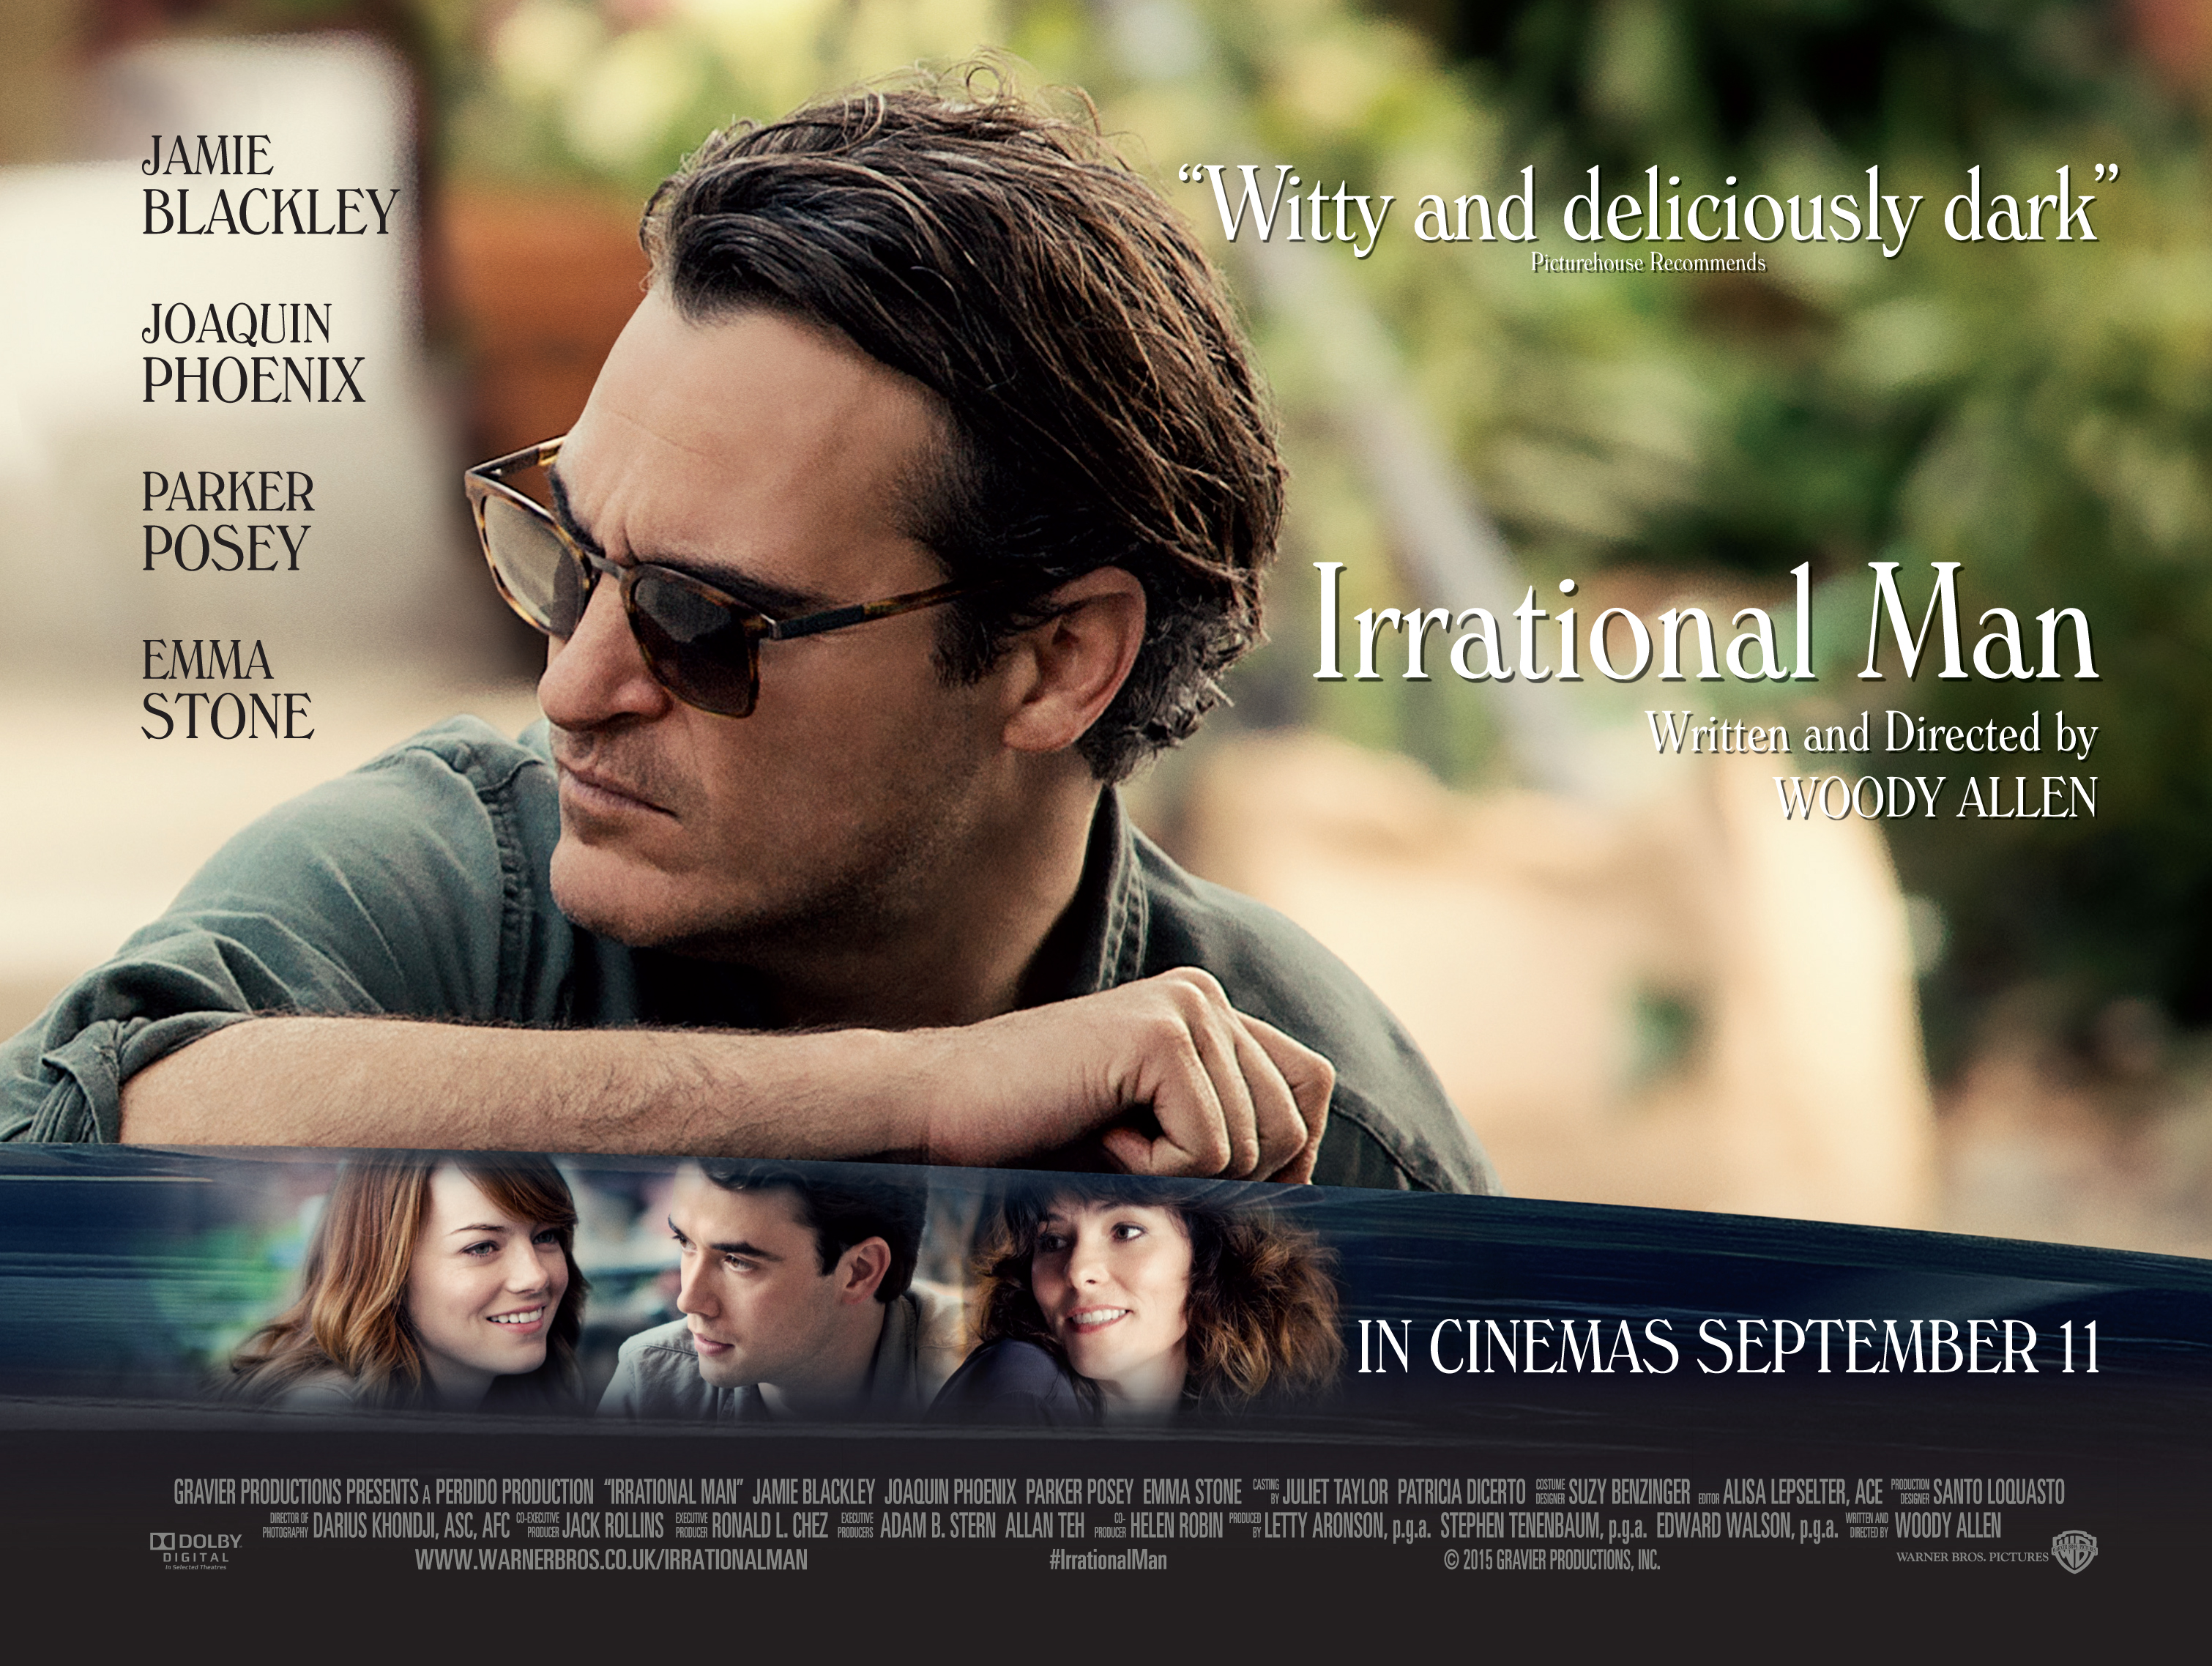 PSICOFILM: Irrational man, di Woody Allen (2015)